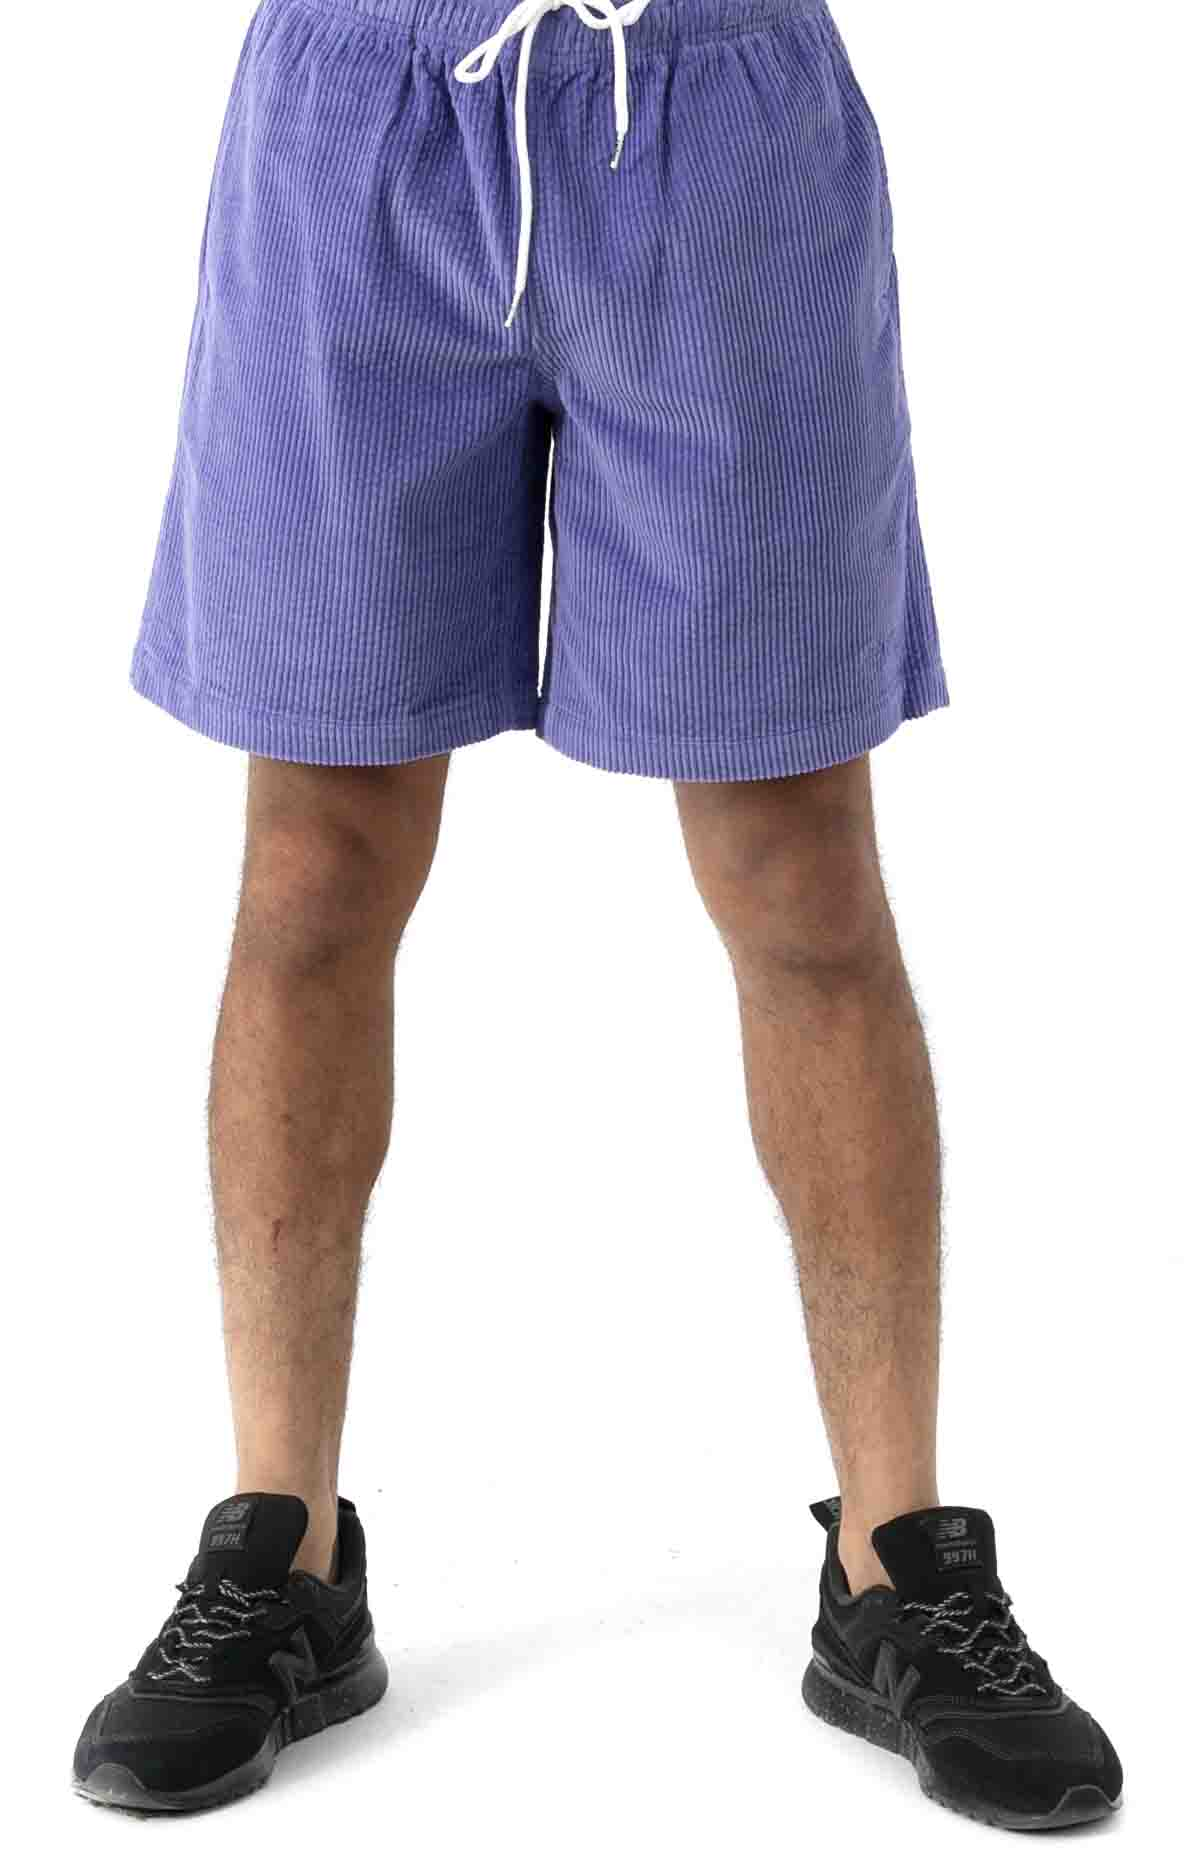 Wide Wale Corduroy Chill Shorts - Periwinkle  2